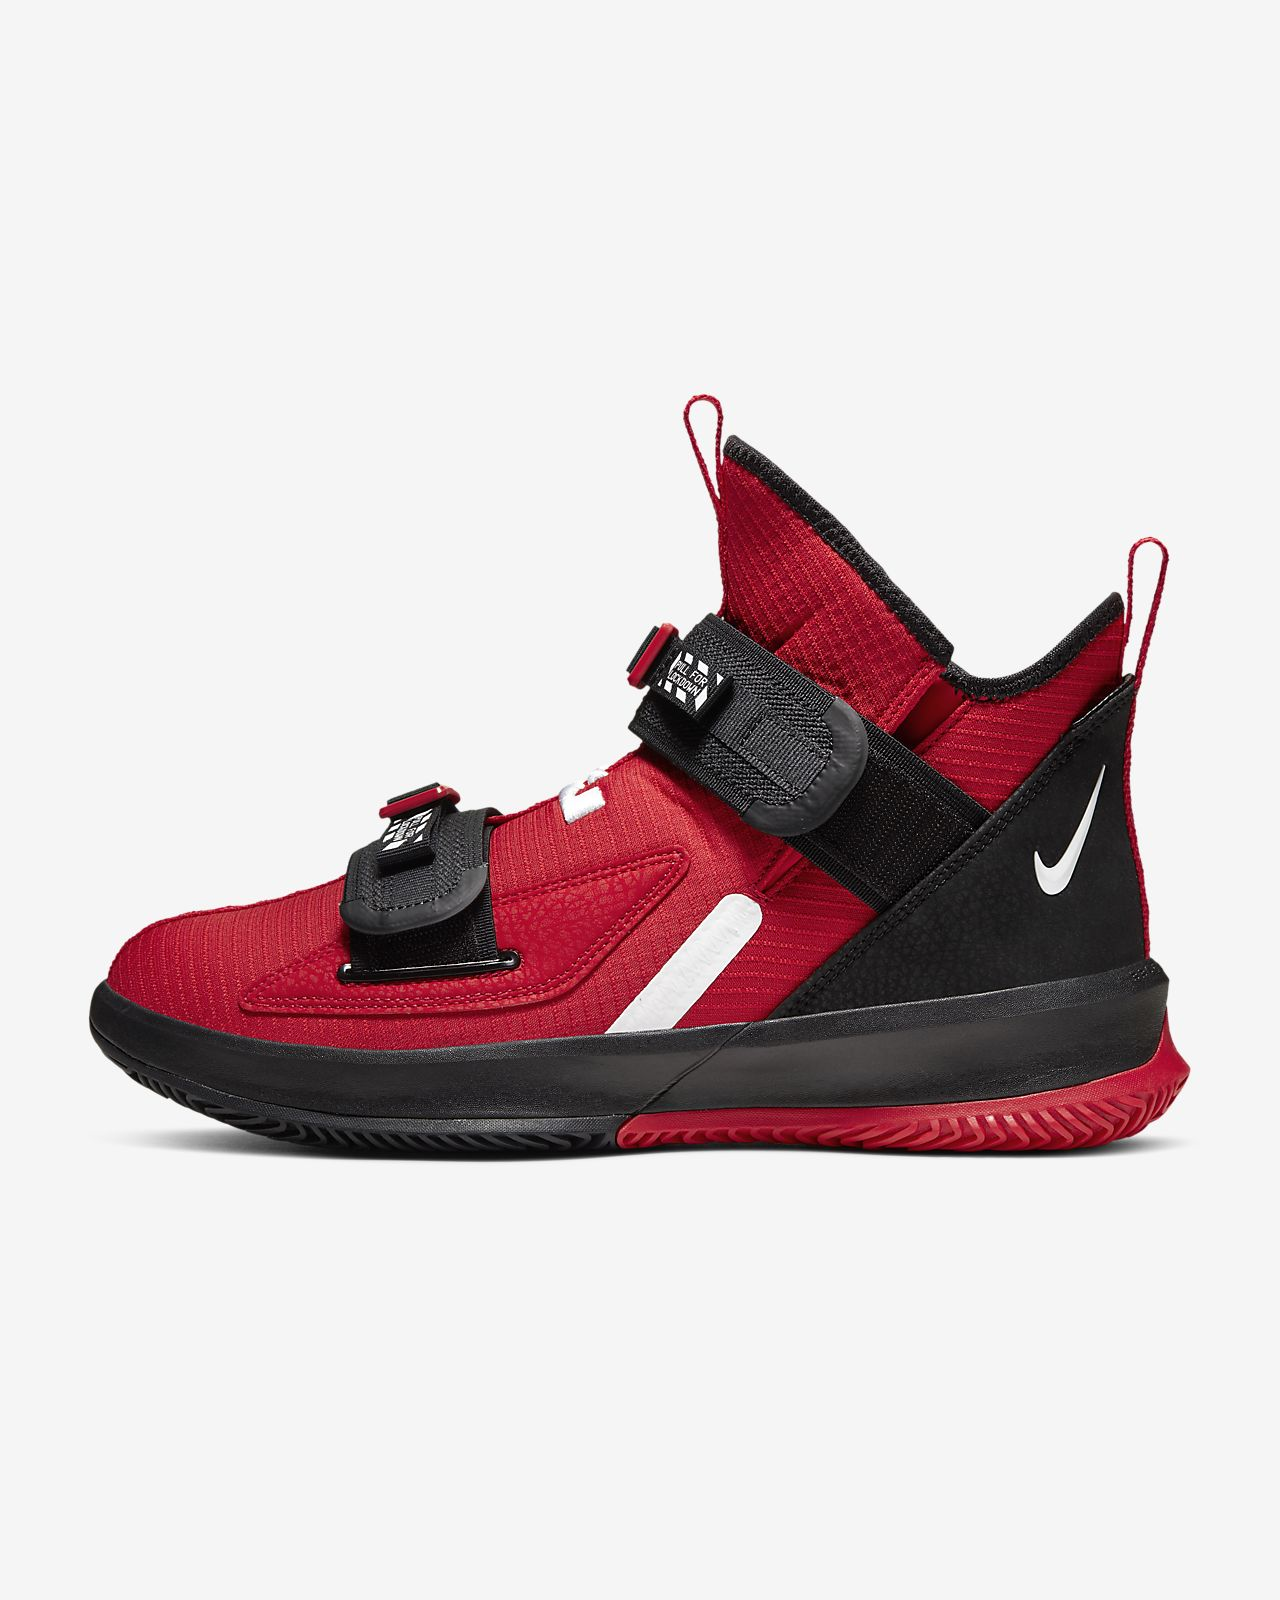 LeBron Soldier 13 SFG EP Basketball Shoe